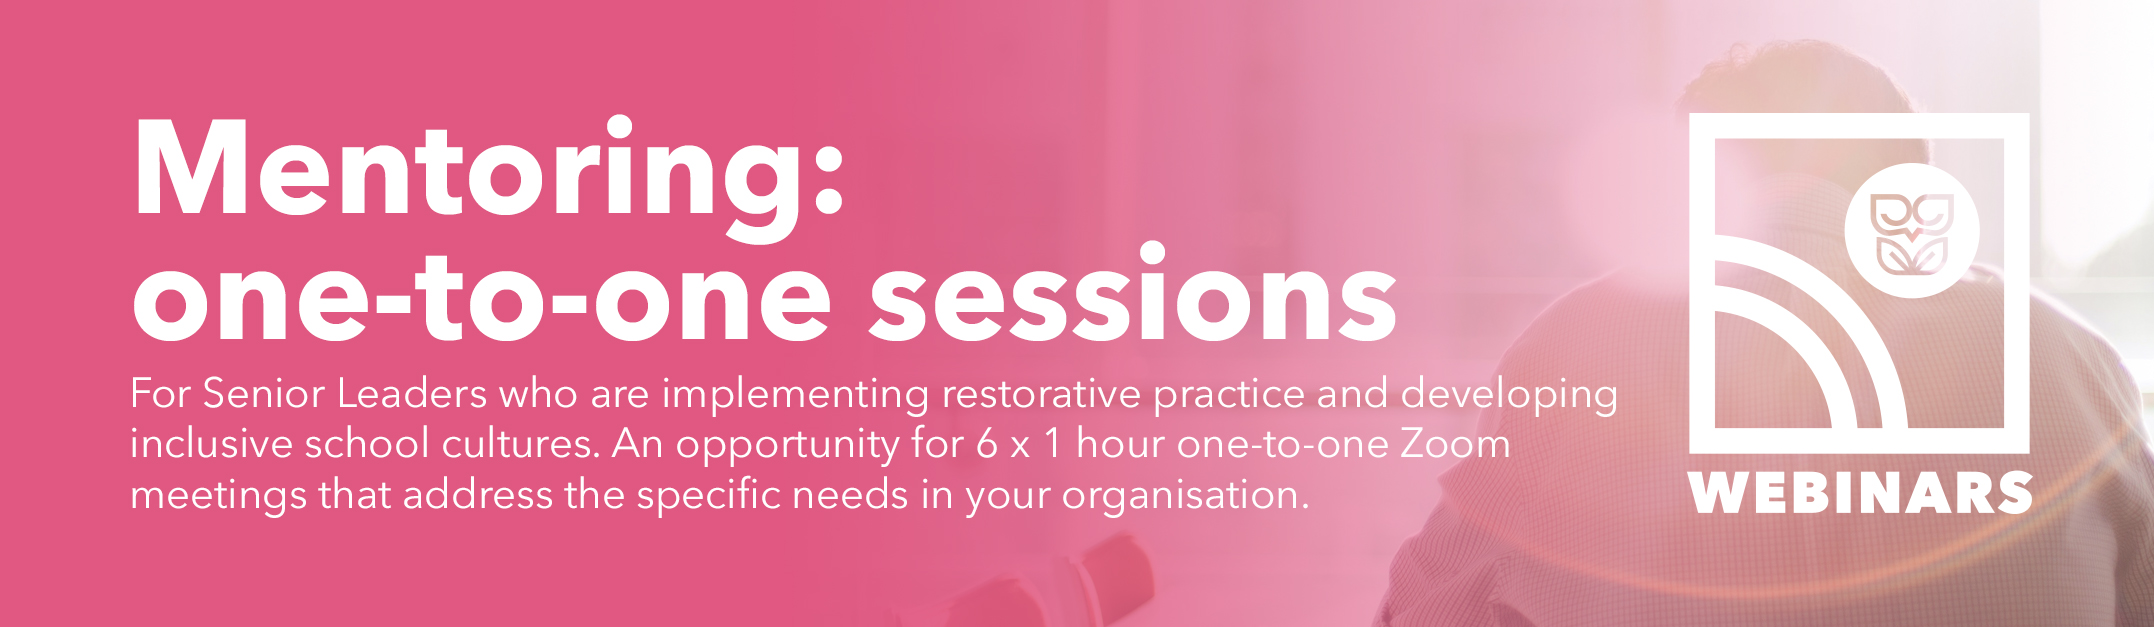 Relational and restorative practice - one to one